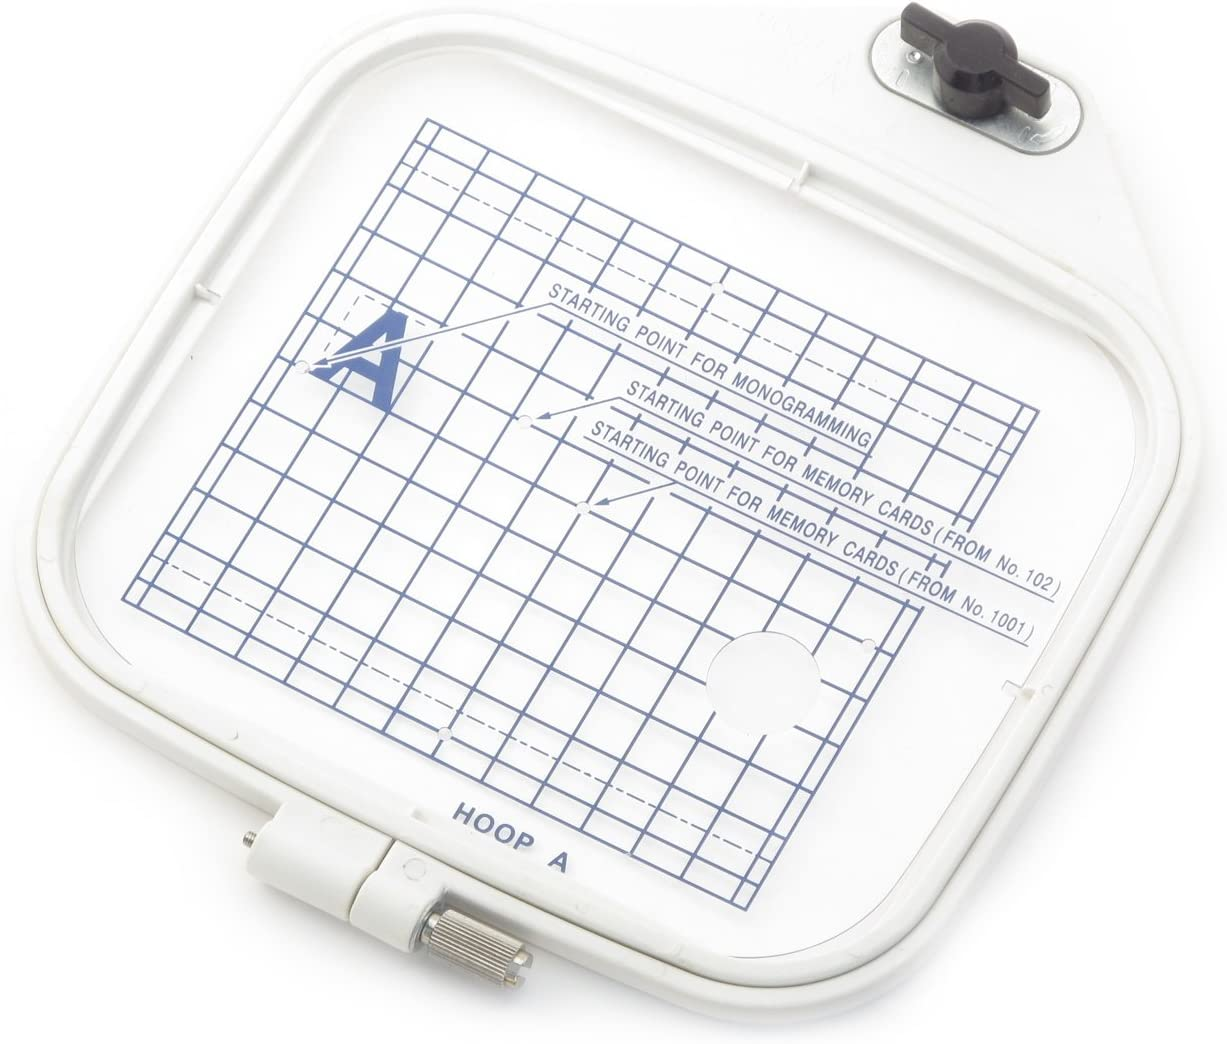 Embroidery Direct store Hoop A - 4.3